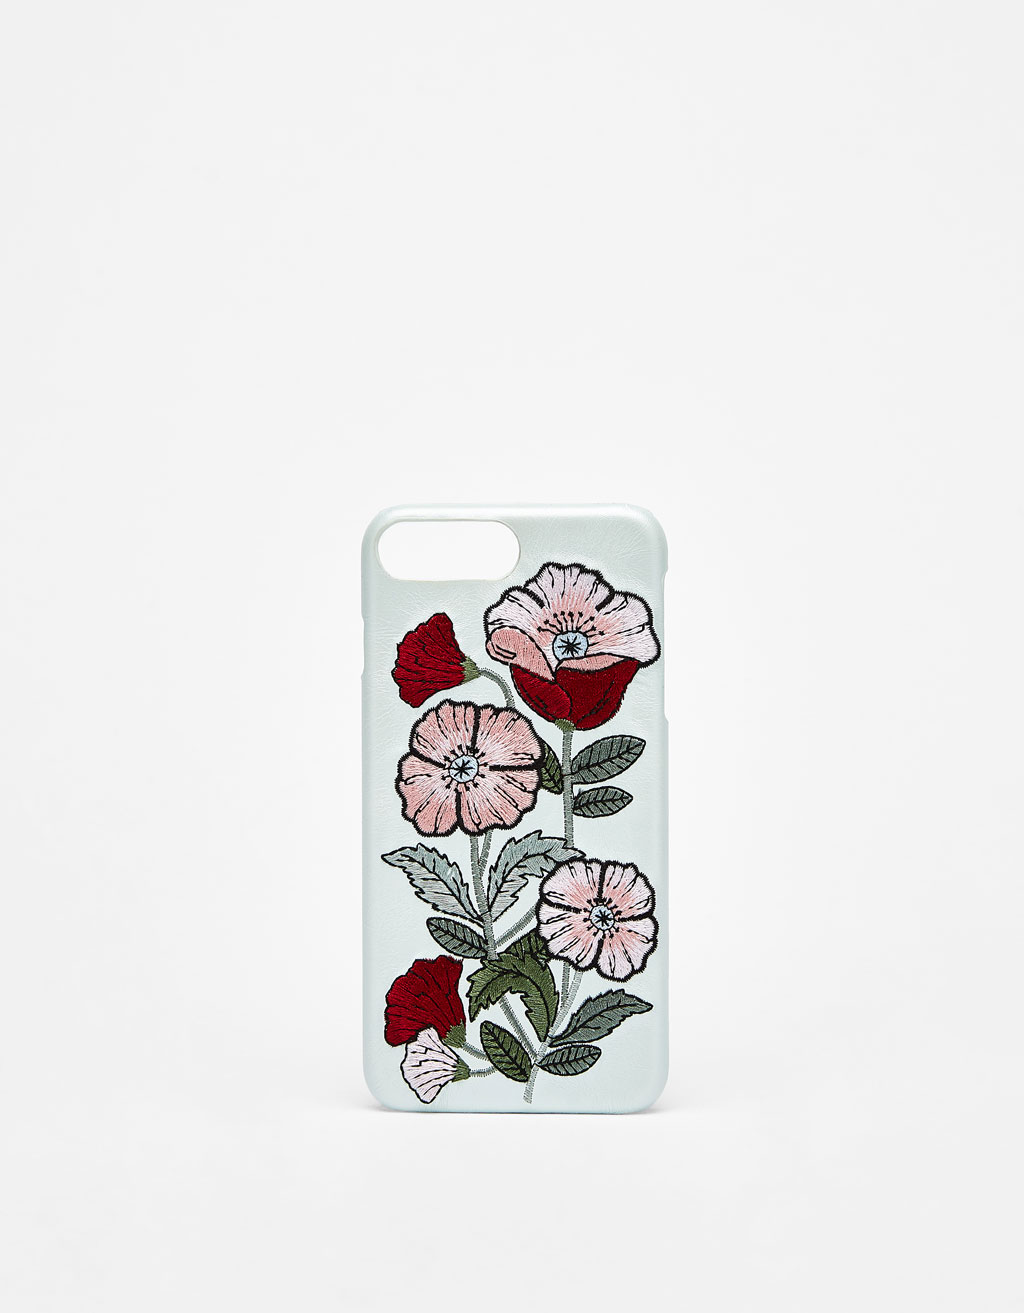 Carcasa con bordado de flores iPhone 6 plus/7 plus/8 plus